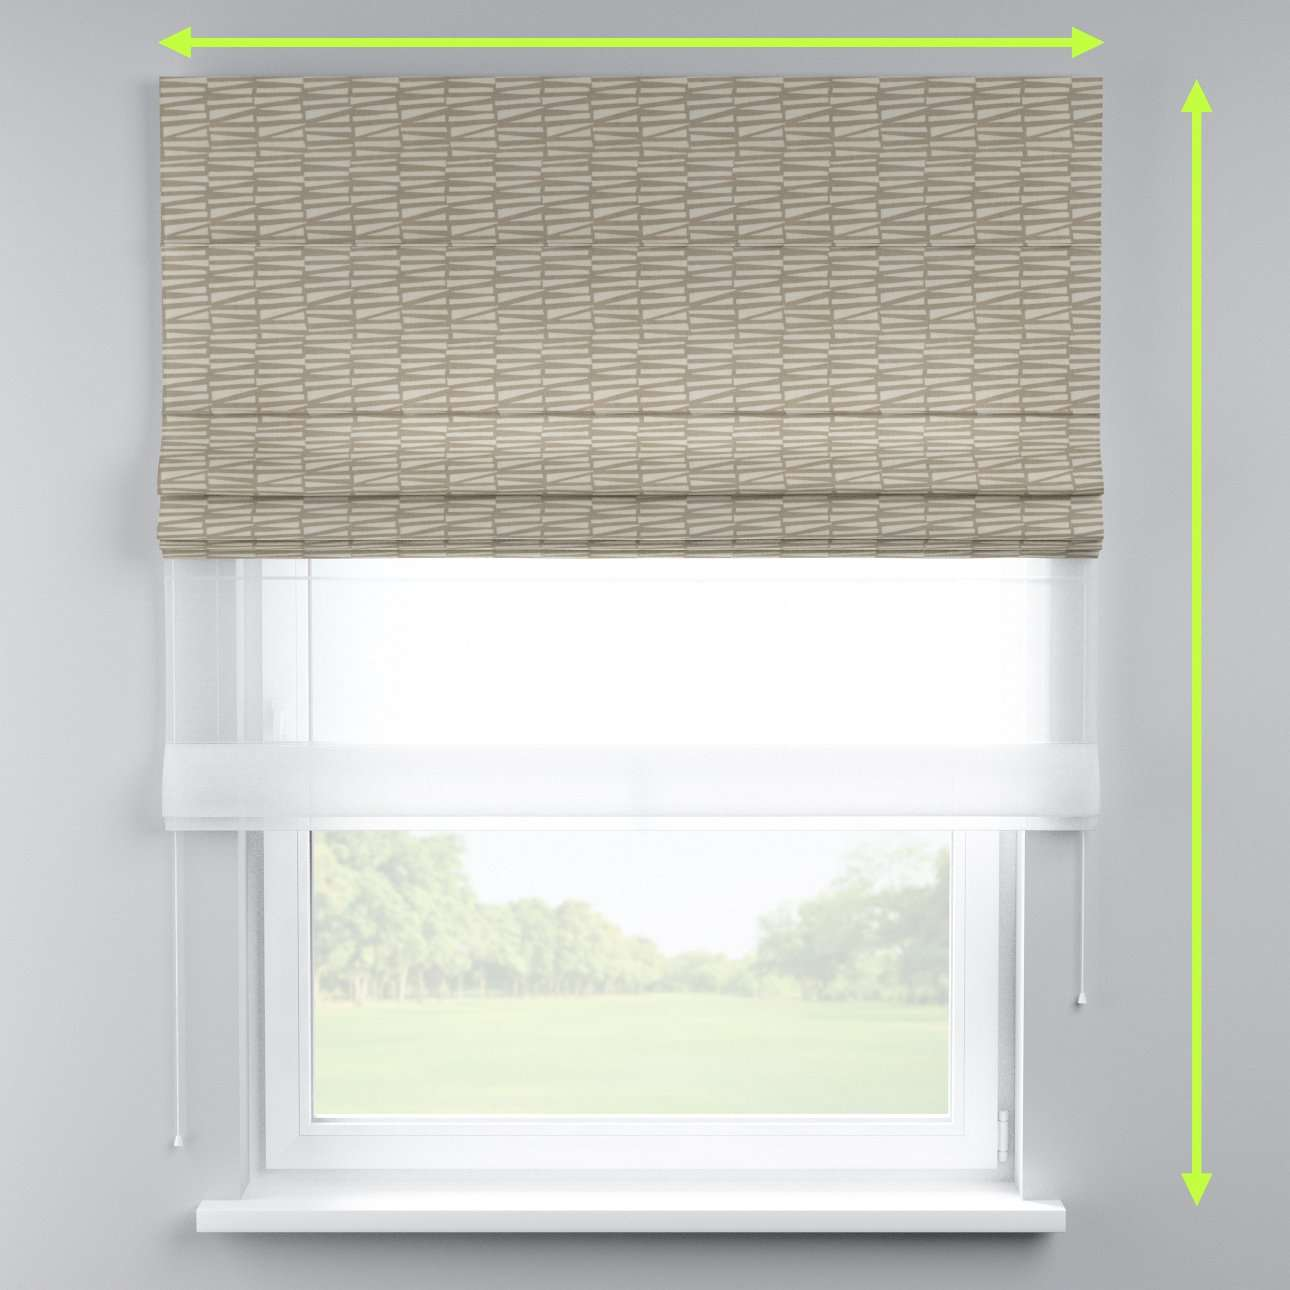 Voile and fabric roman blind (DUO II) in collection Norge, fabric: 140-84